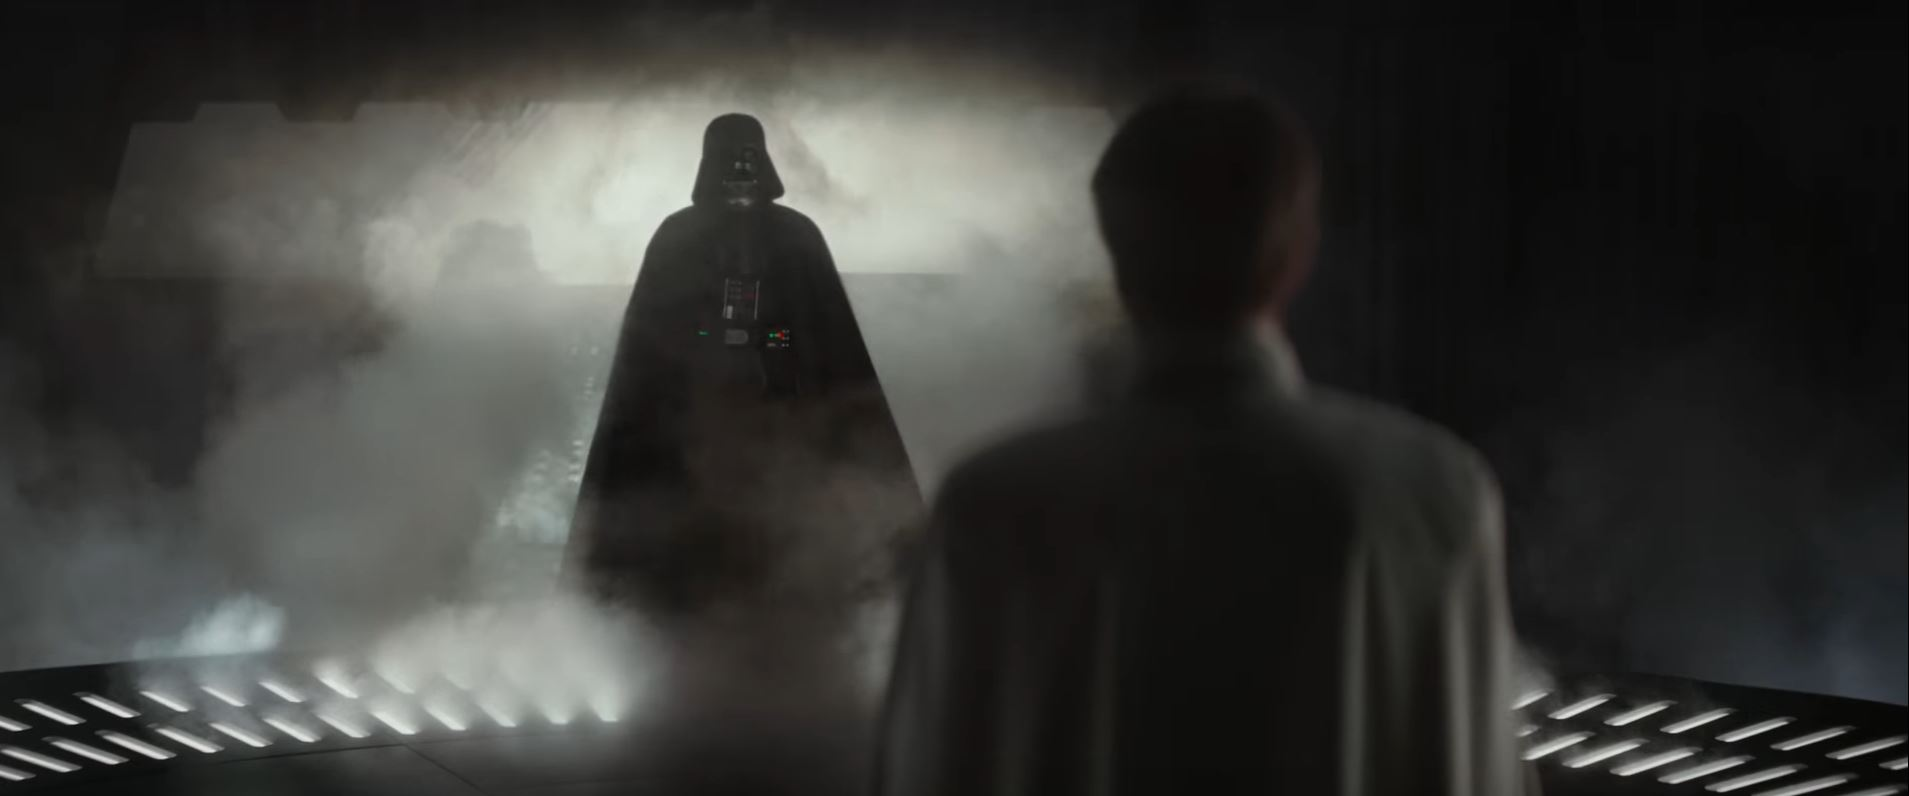 darth vader rogue one a star wars story trailer finale scena